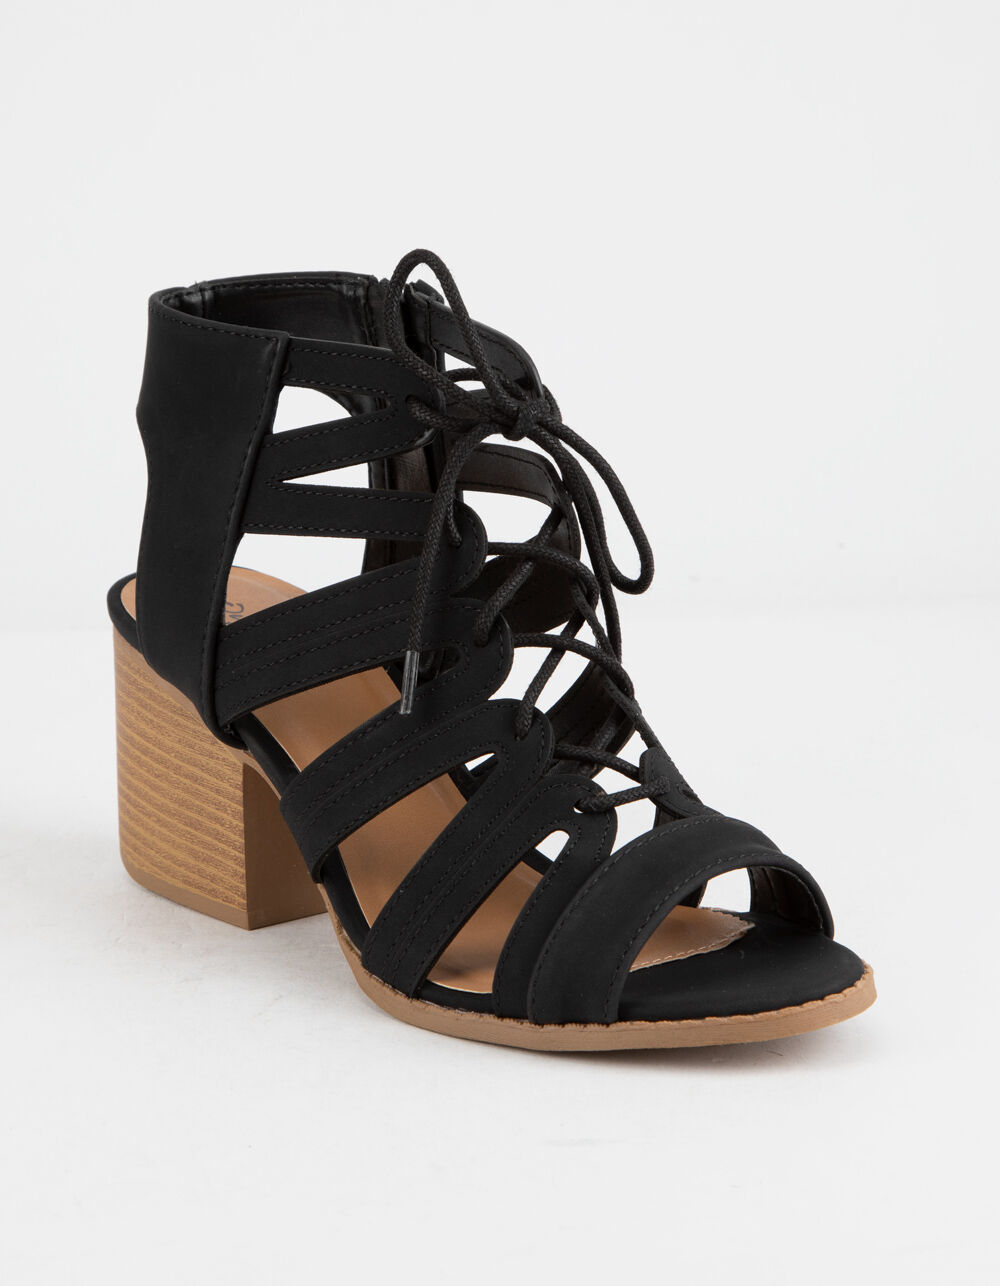 QUPID Lace Up Black Heeled Sandals